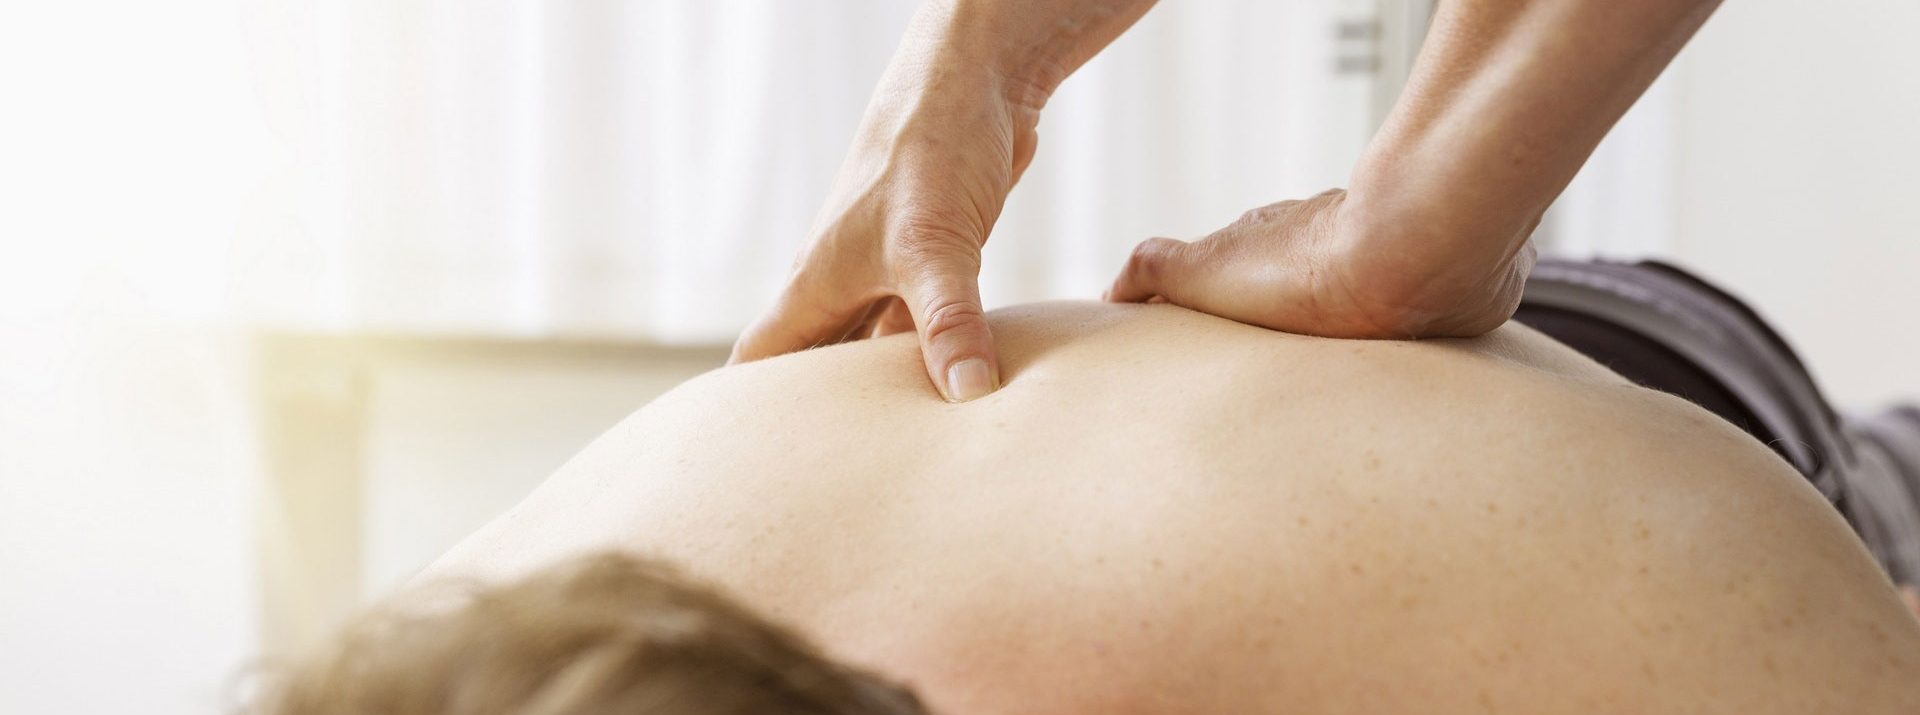 45min Remedial Massage for $65 (normally $90).